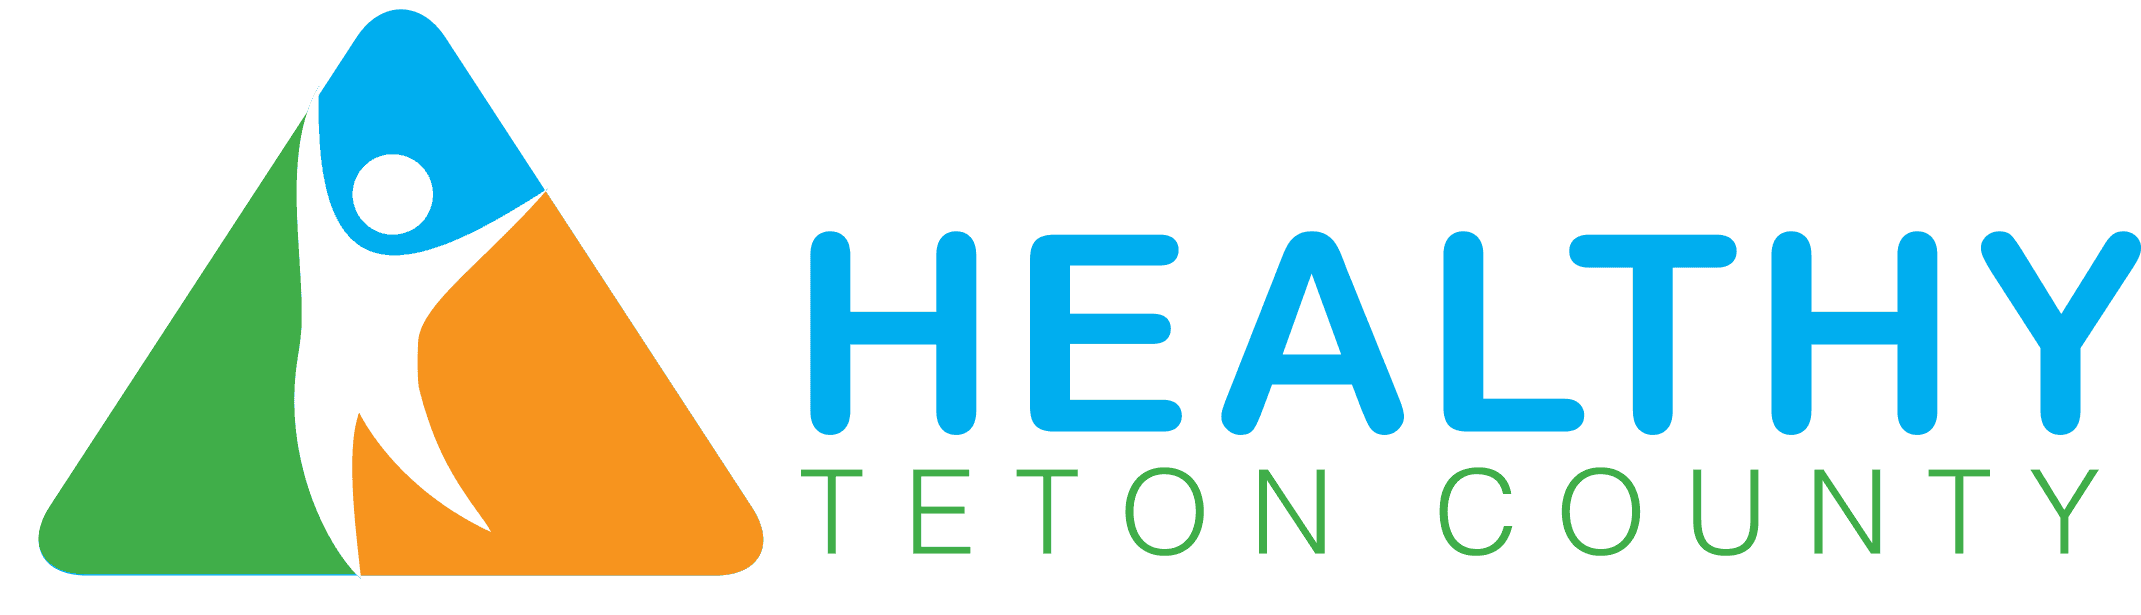 horizontal Healthy Teton County Logo with orange, green, and blue colors